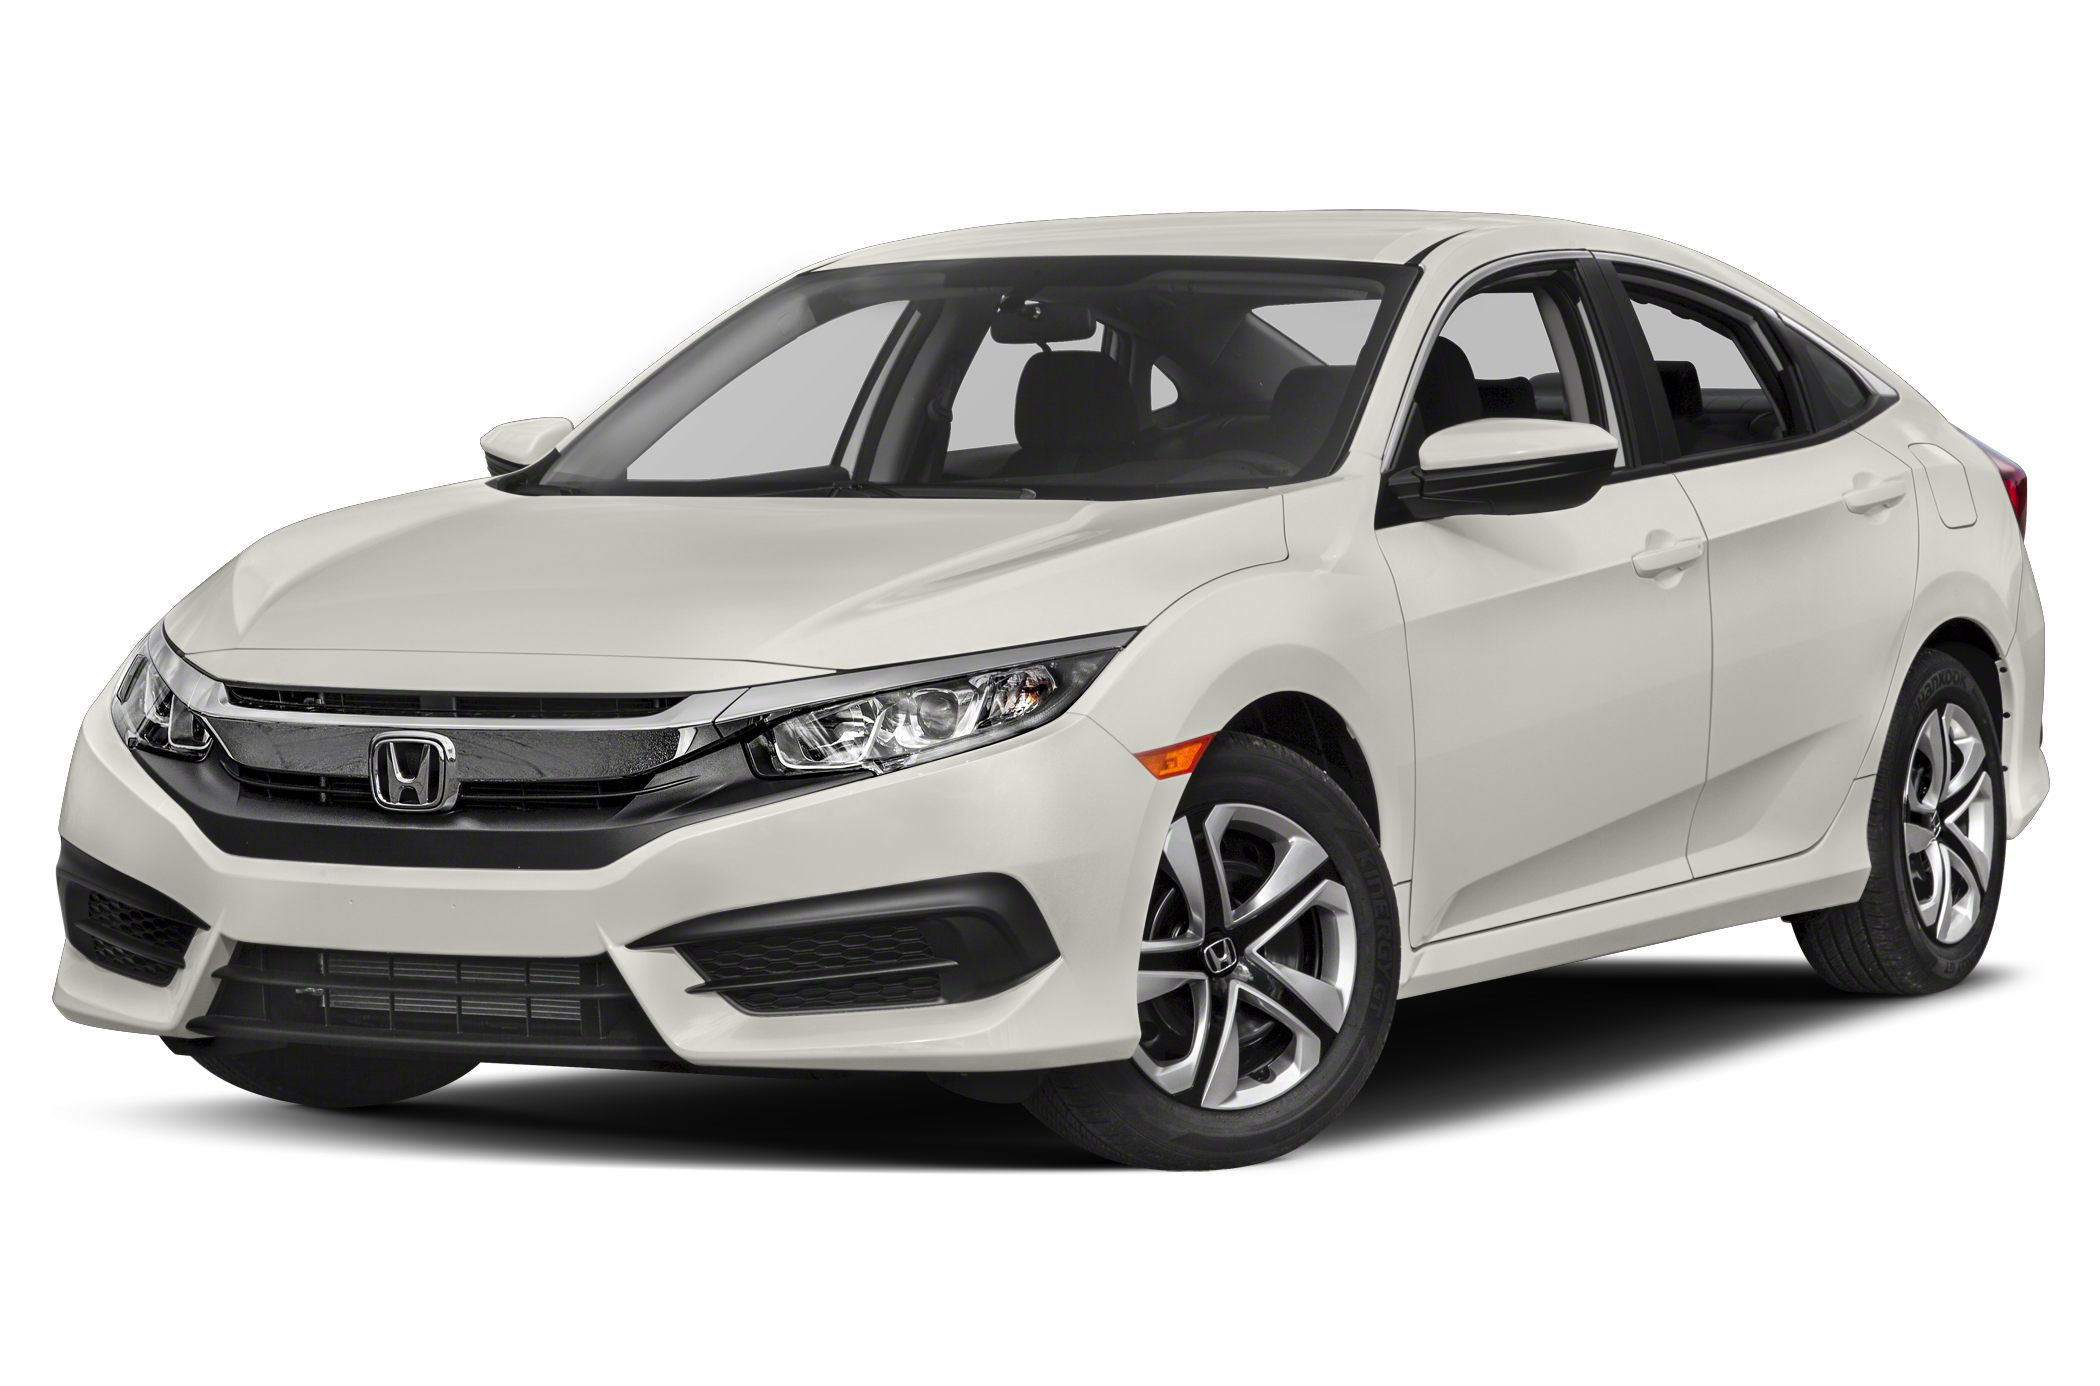 Honda Civic Pricing Reviews And New Model Information